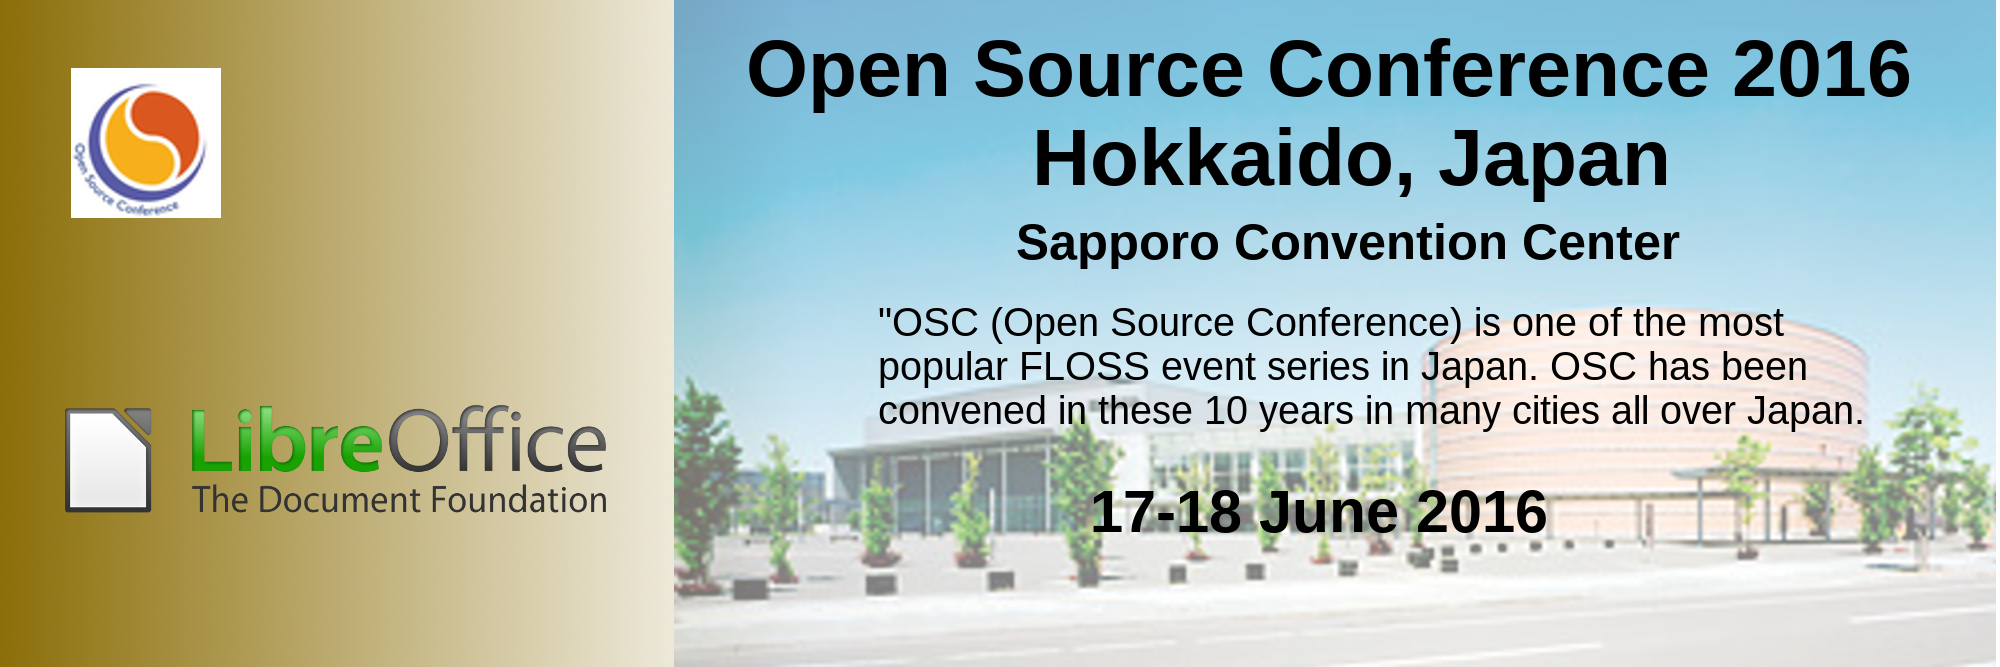 06 17 18Jun2016 OpenSourceConferenceSapporo EN